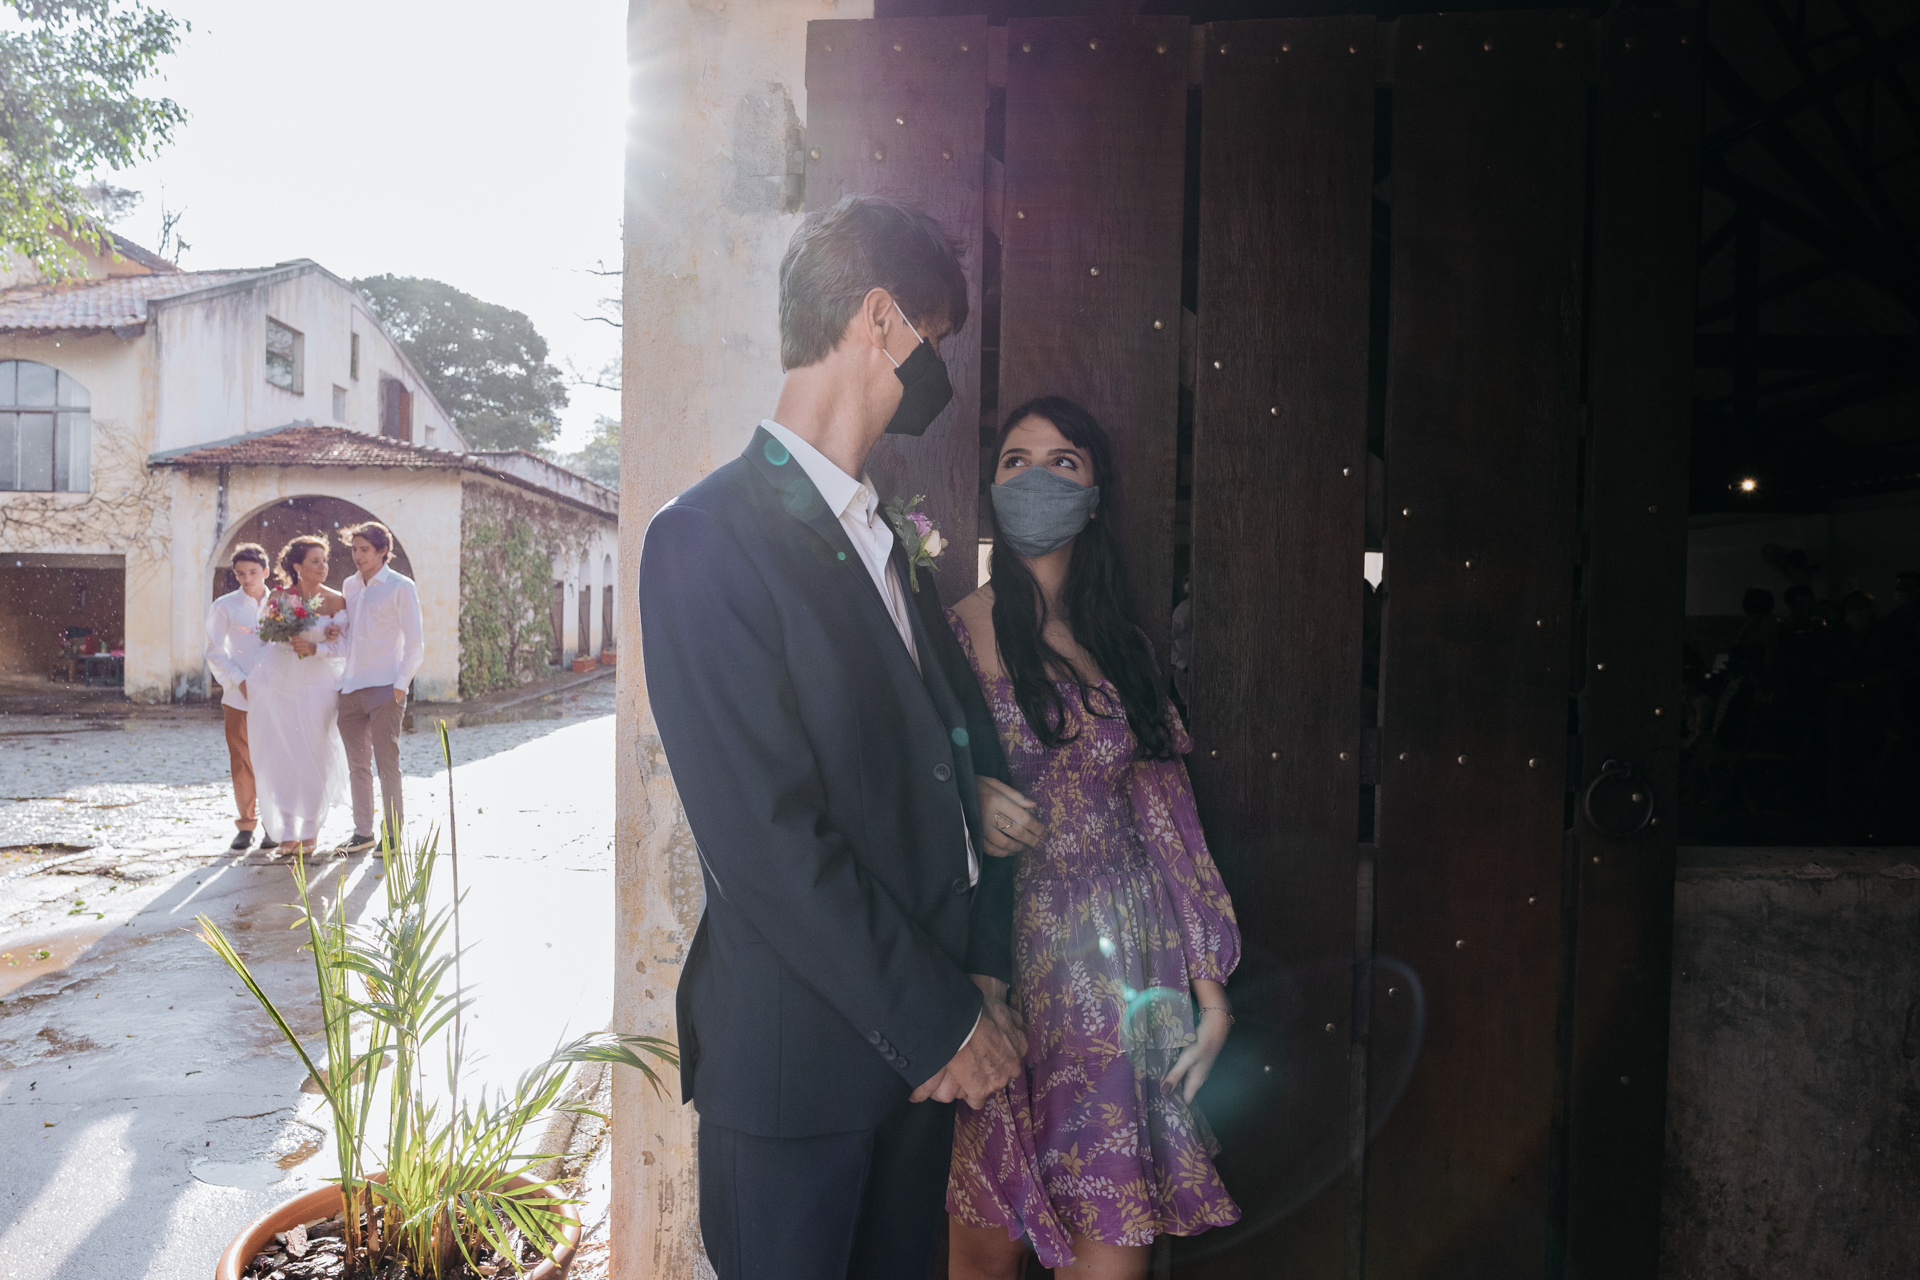 Wedding Images - Maristela Farm, Sao Paulo Brazil | The groom waits to enter the ceremony with his daughter